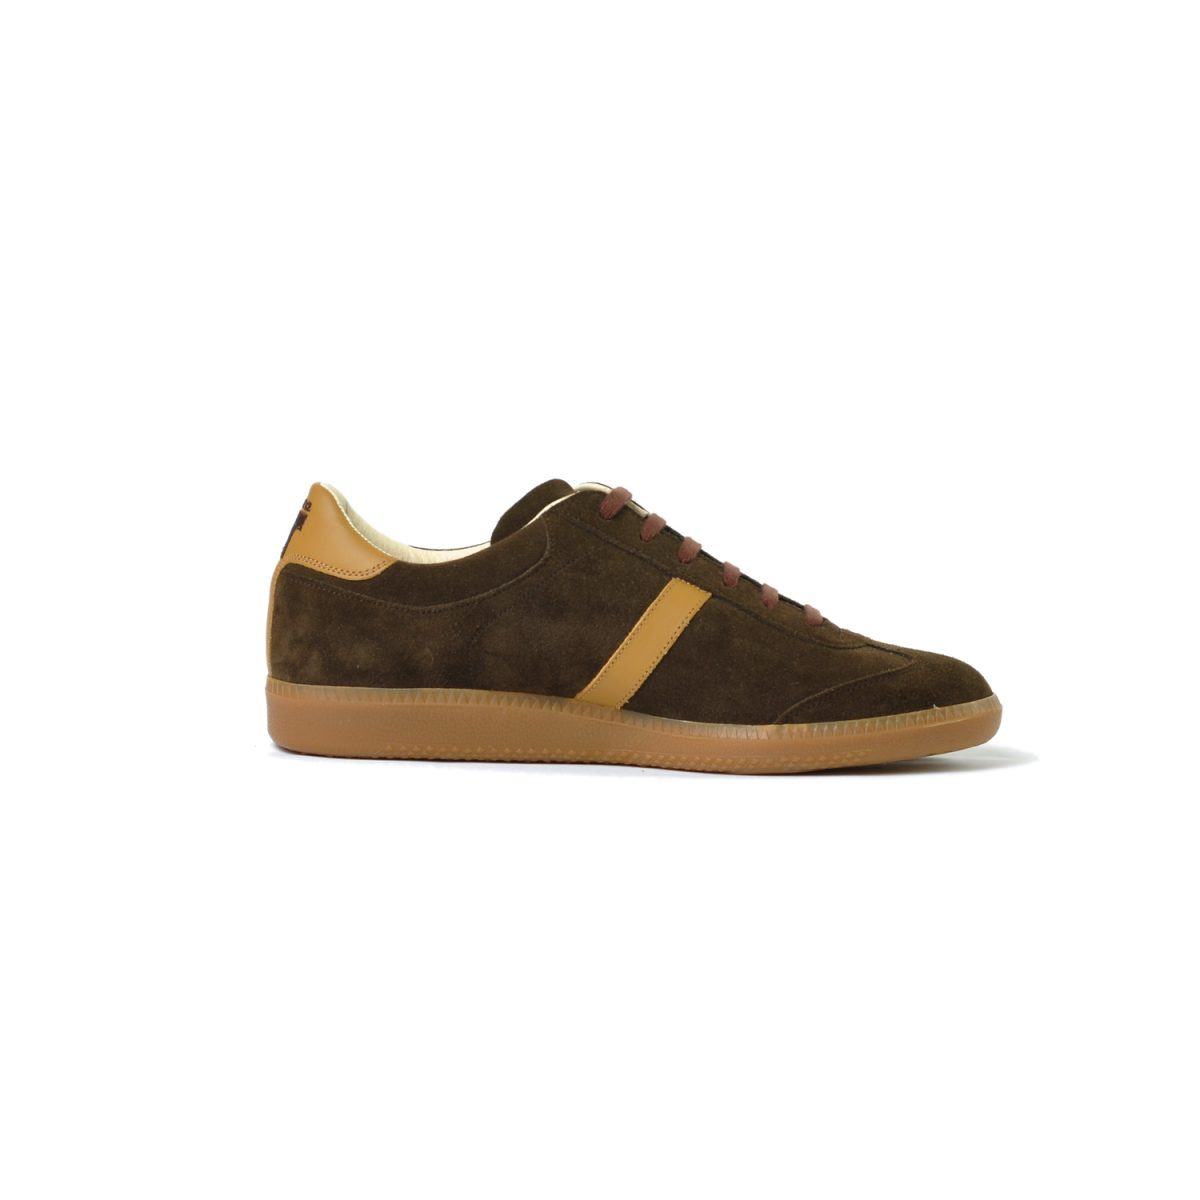 Tisza shoes - Compakt - Brown-beige suede